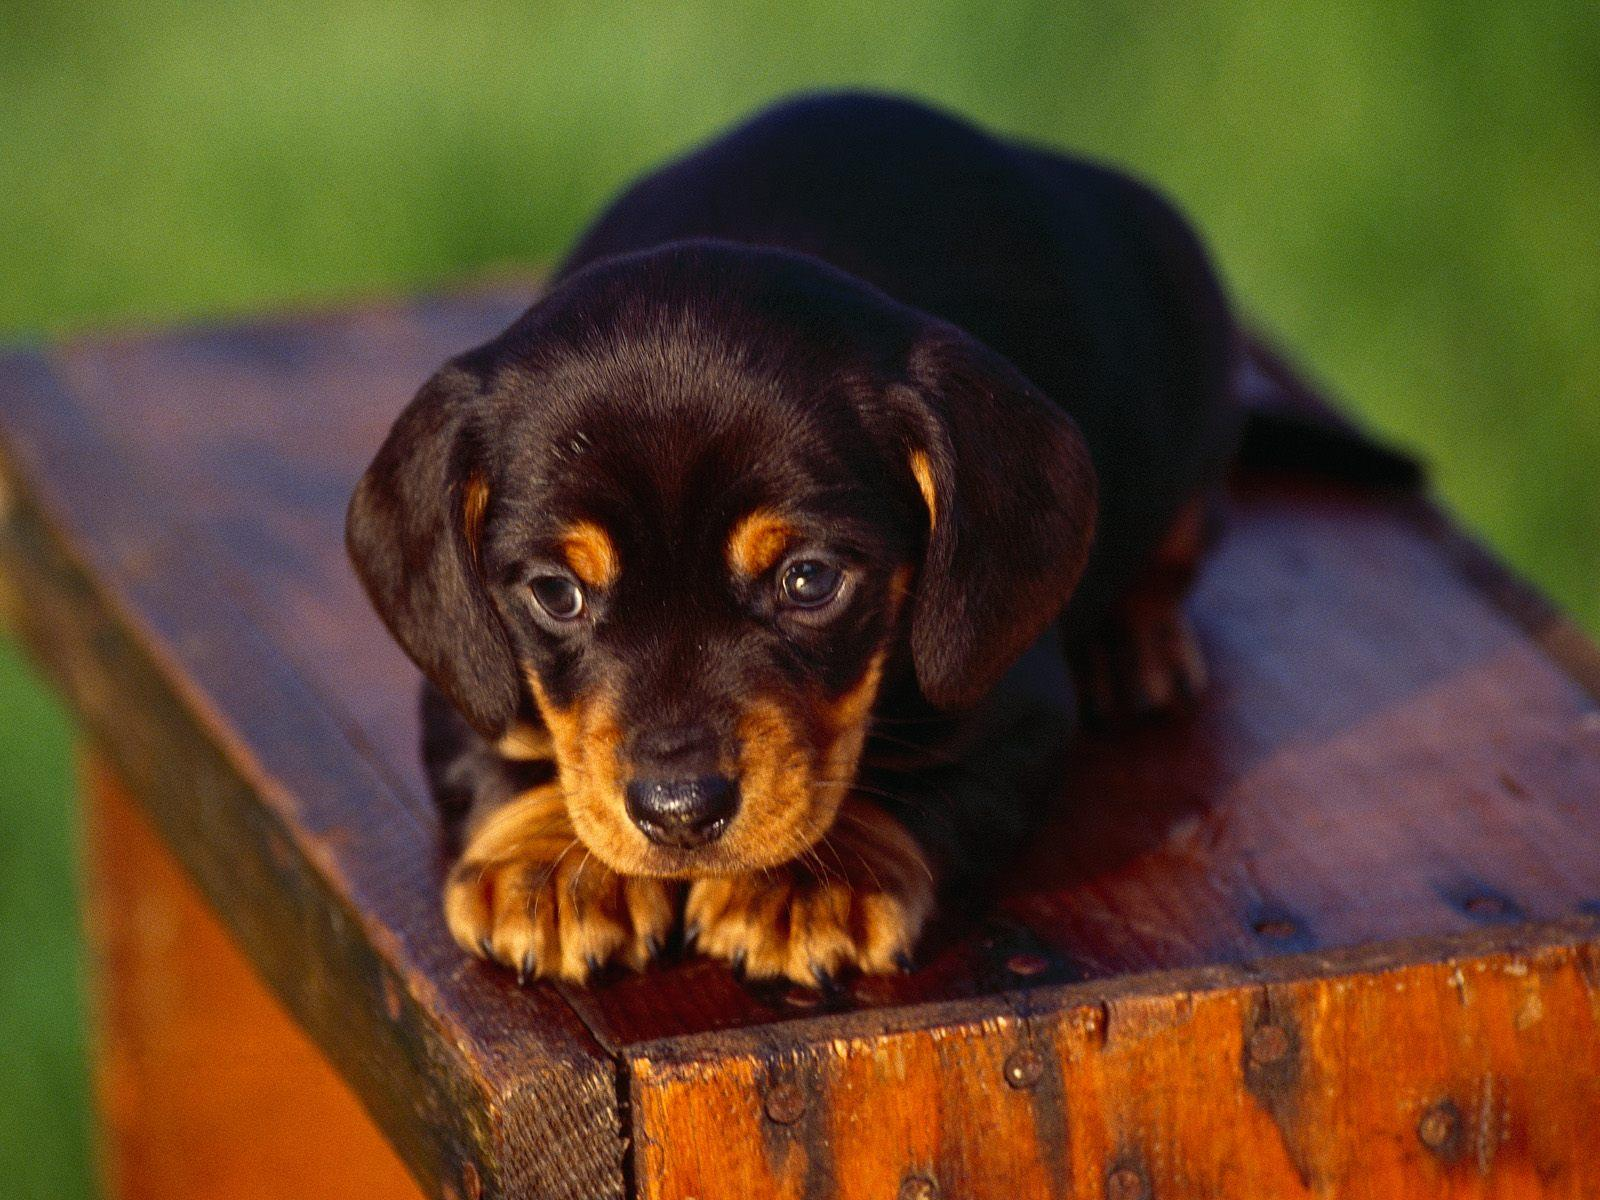 Black and Tan Coonhound puppy photo and wallpaper Beautiful Black and 1600x1200